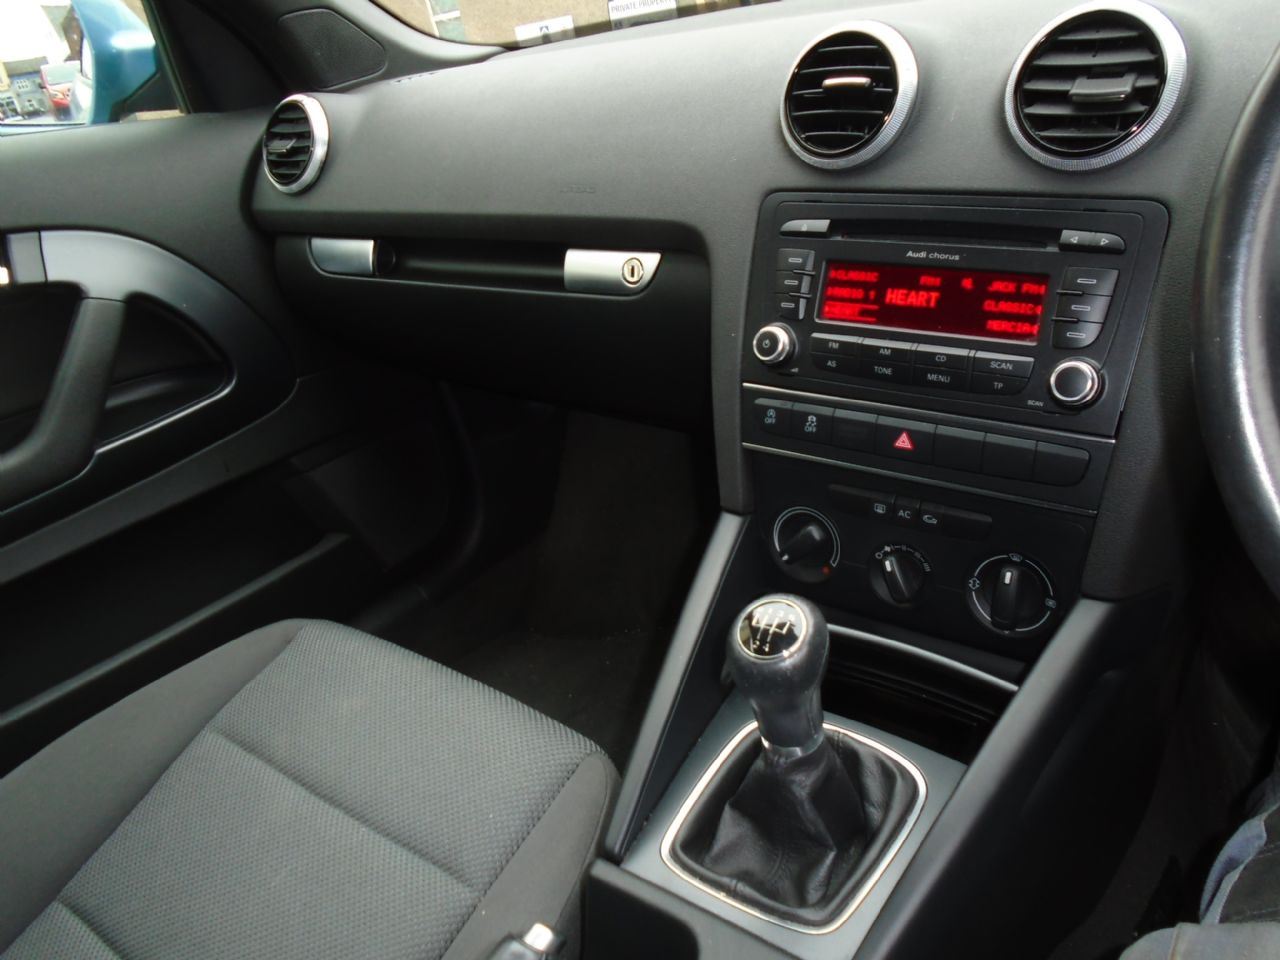 AUDI A3 1.6 TDI Technik - Picture 12